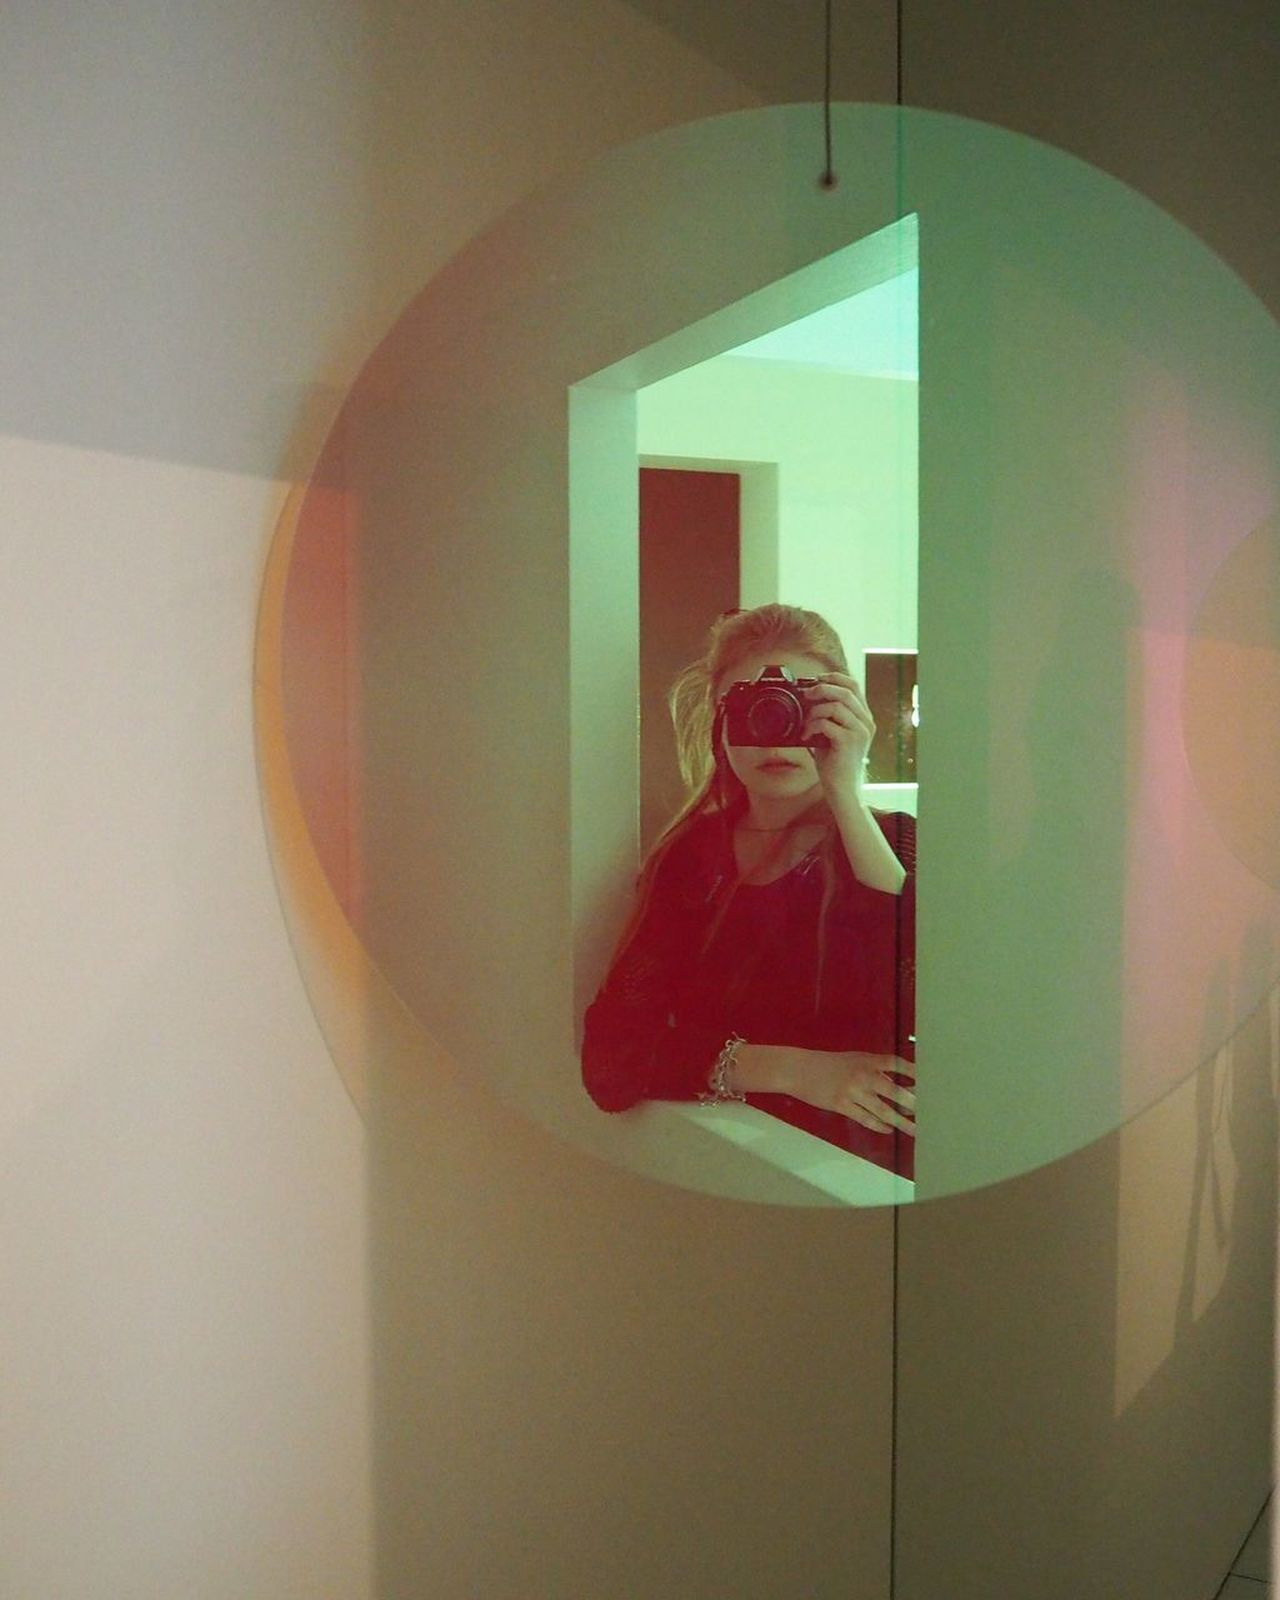 Real People Lifestyles One Person Waist Up Three Quarter Length Indoors  Standing Leisure Activity Home Interior Young Women Mirror Camera Morden Young Adult Illuminated Day Architecture EyeEmNewHere Fantasy Surrealism Colors Epic